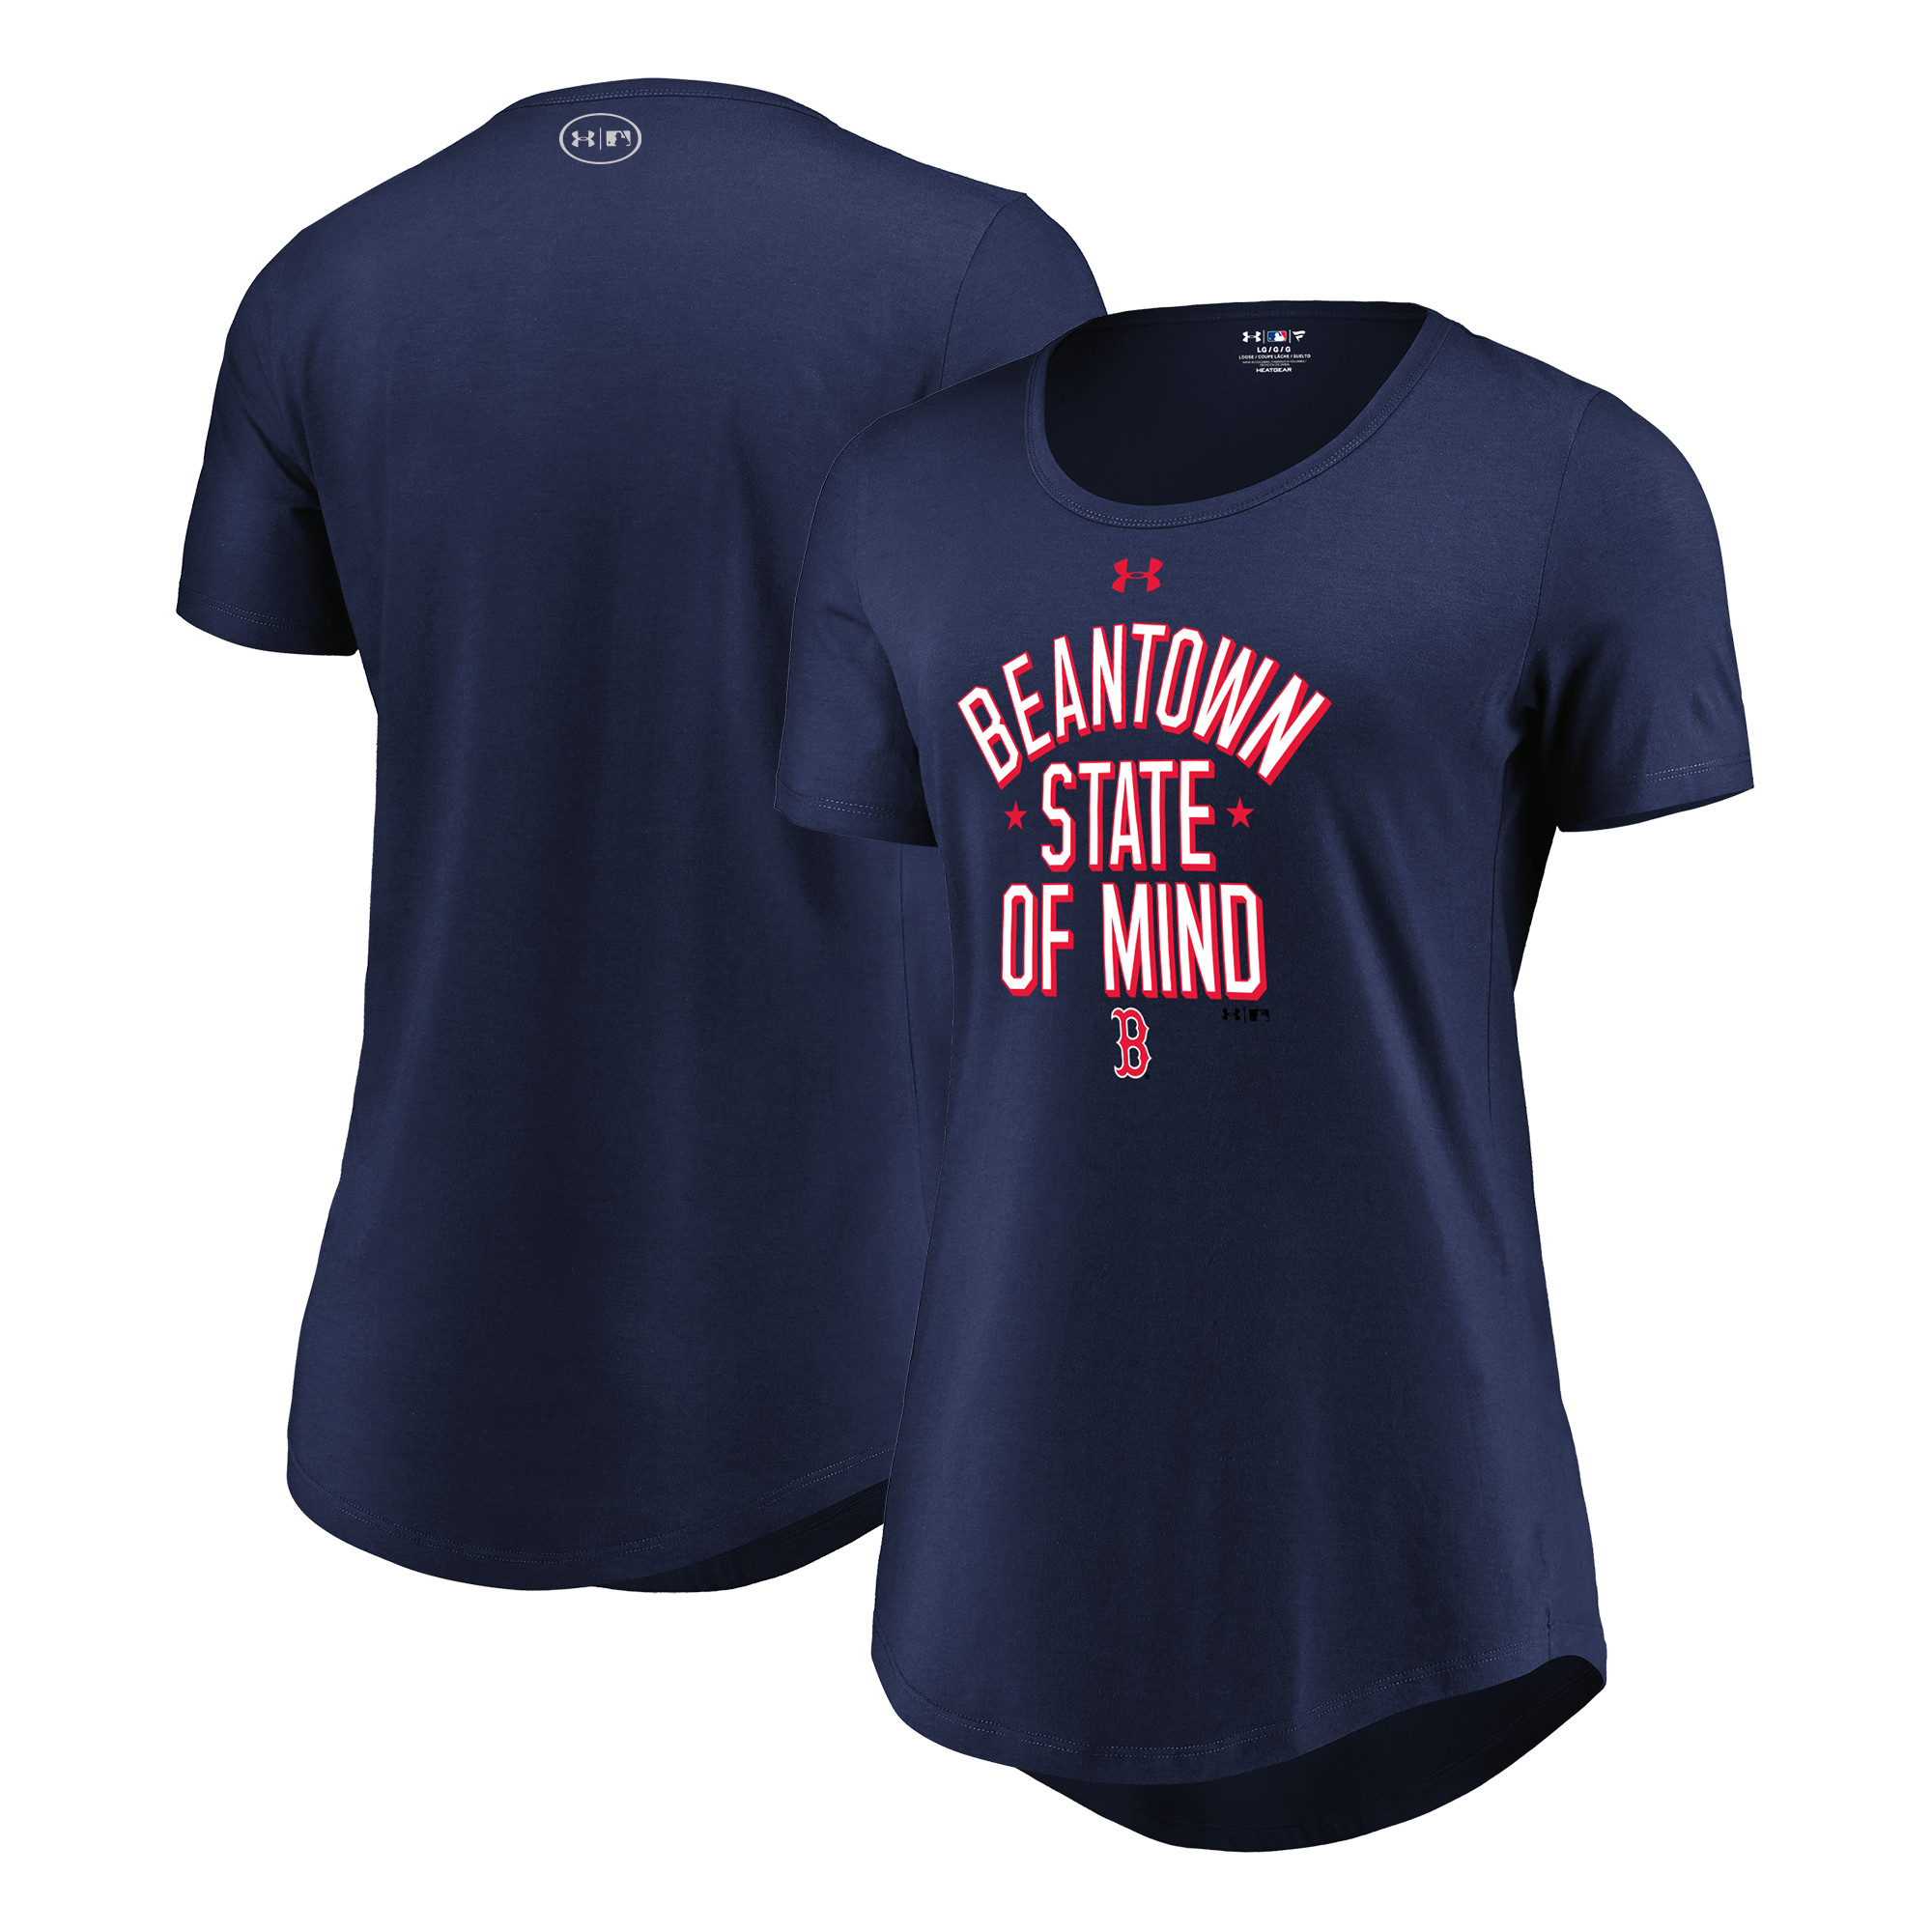 Boston Red Sox Under Armour Women's Passion State of Mind Performance Tri-Blend T-Shirt - Navy